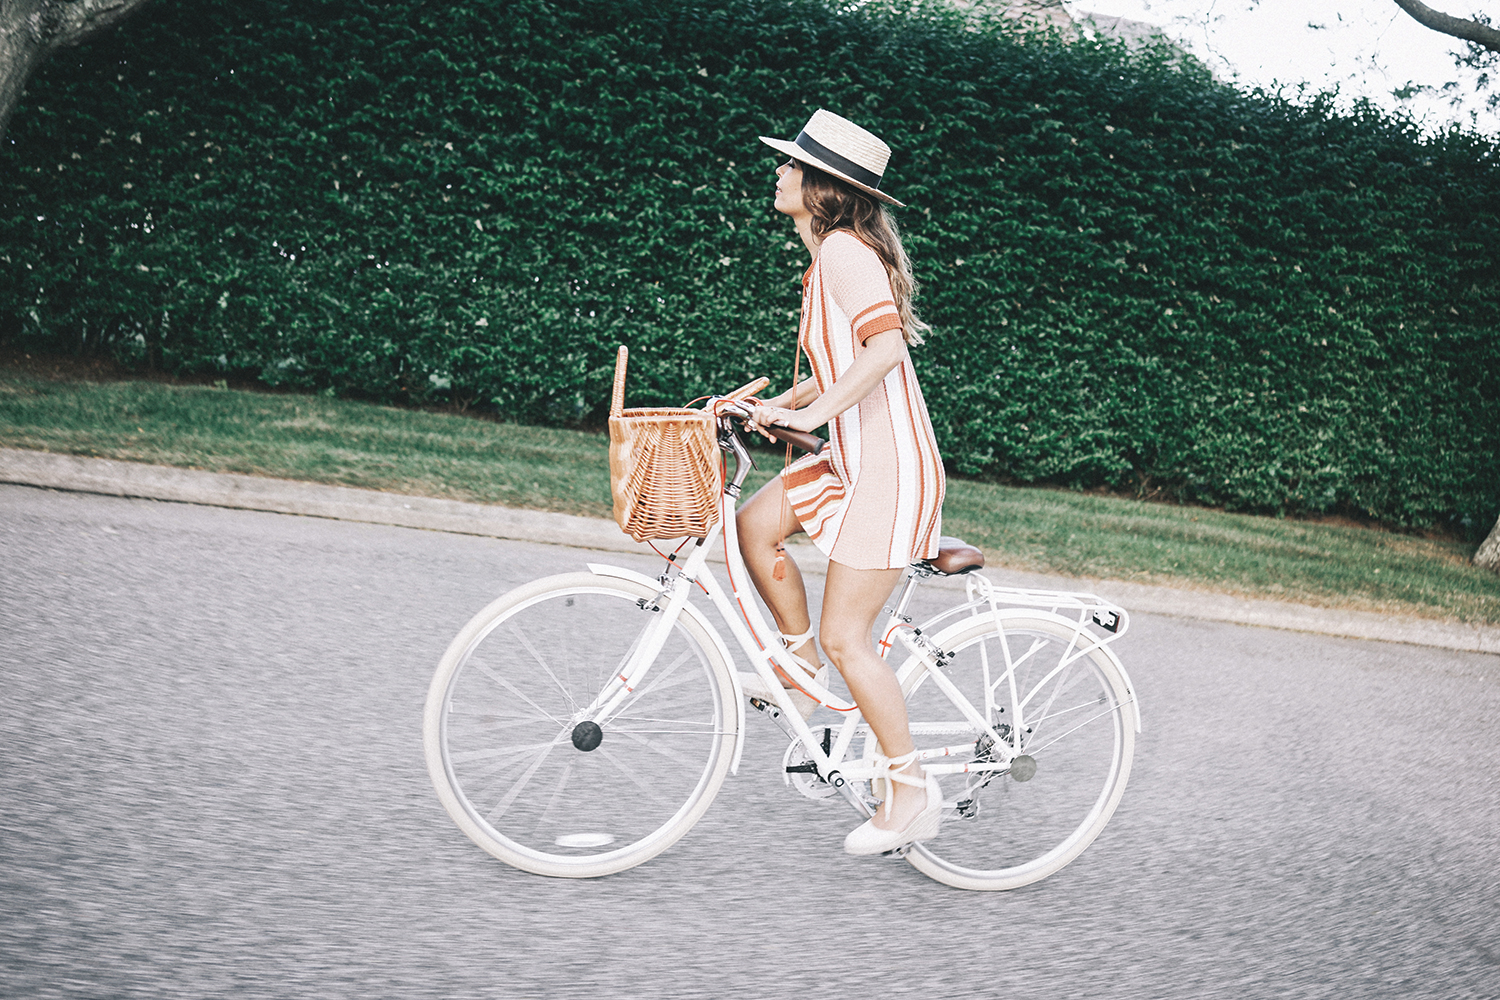 Revolve_in_The_Hamptons-Revolve_Clothing-Collage_Vintage-Free_People_Lace_Dress-Knitted_Dress-Soludos_Espadrilles-Canotier-Hat-Outfit-116